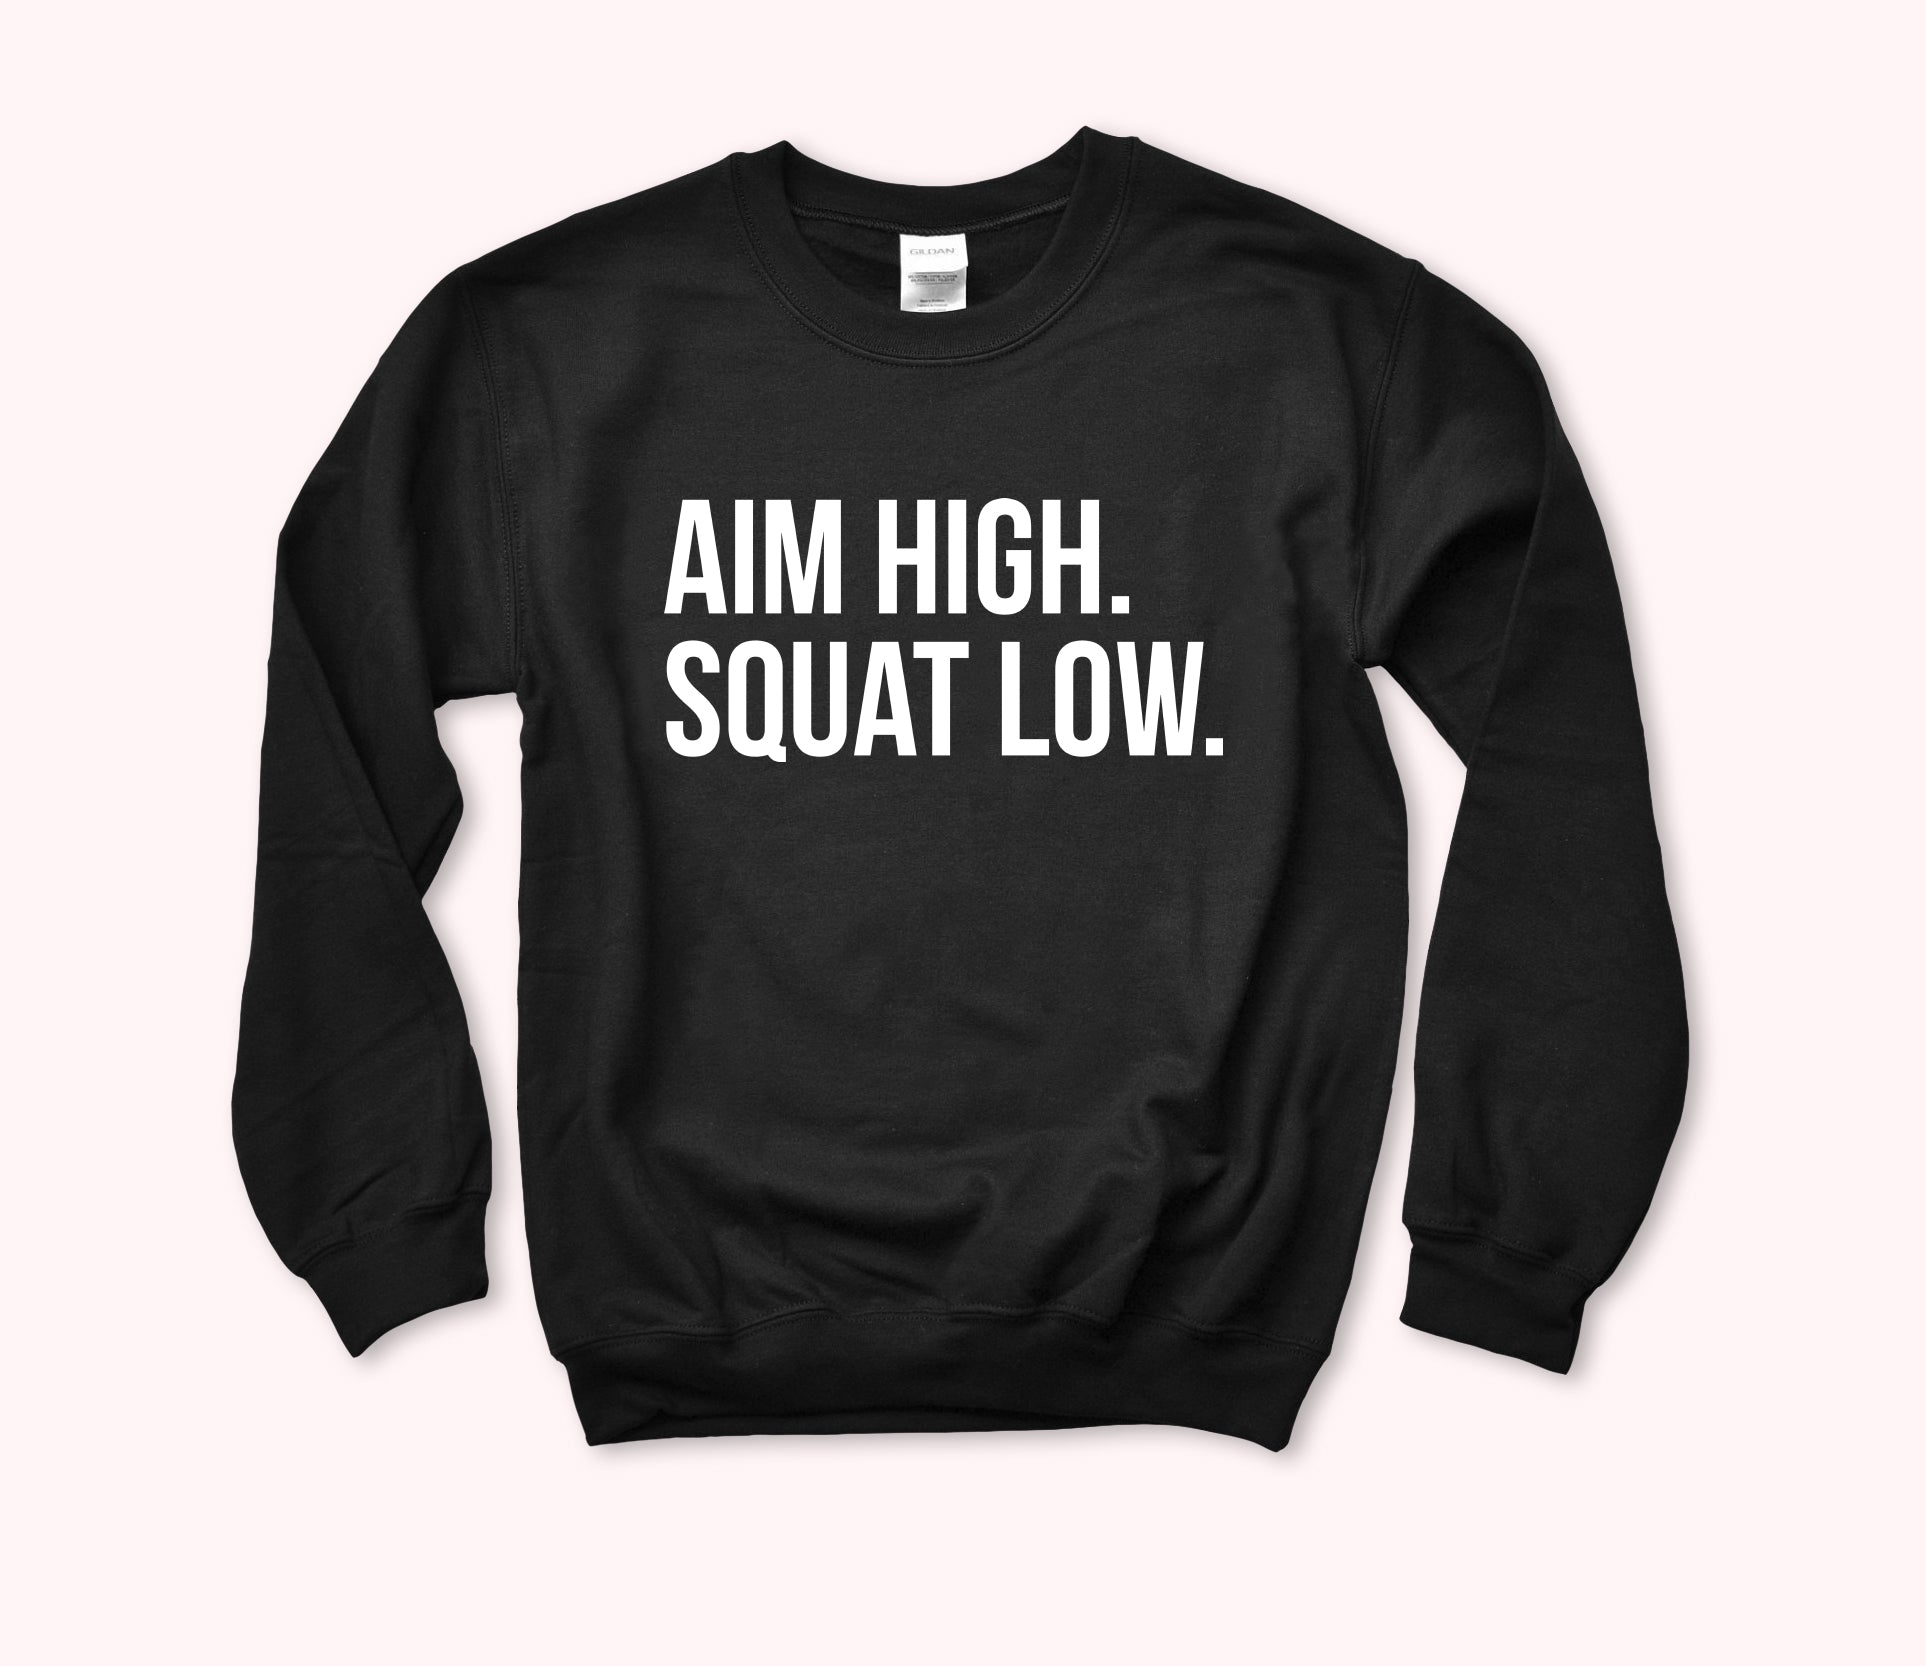 Aim High Squat Low Sweatshirt